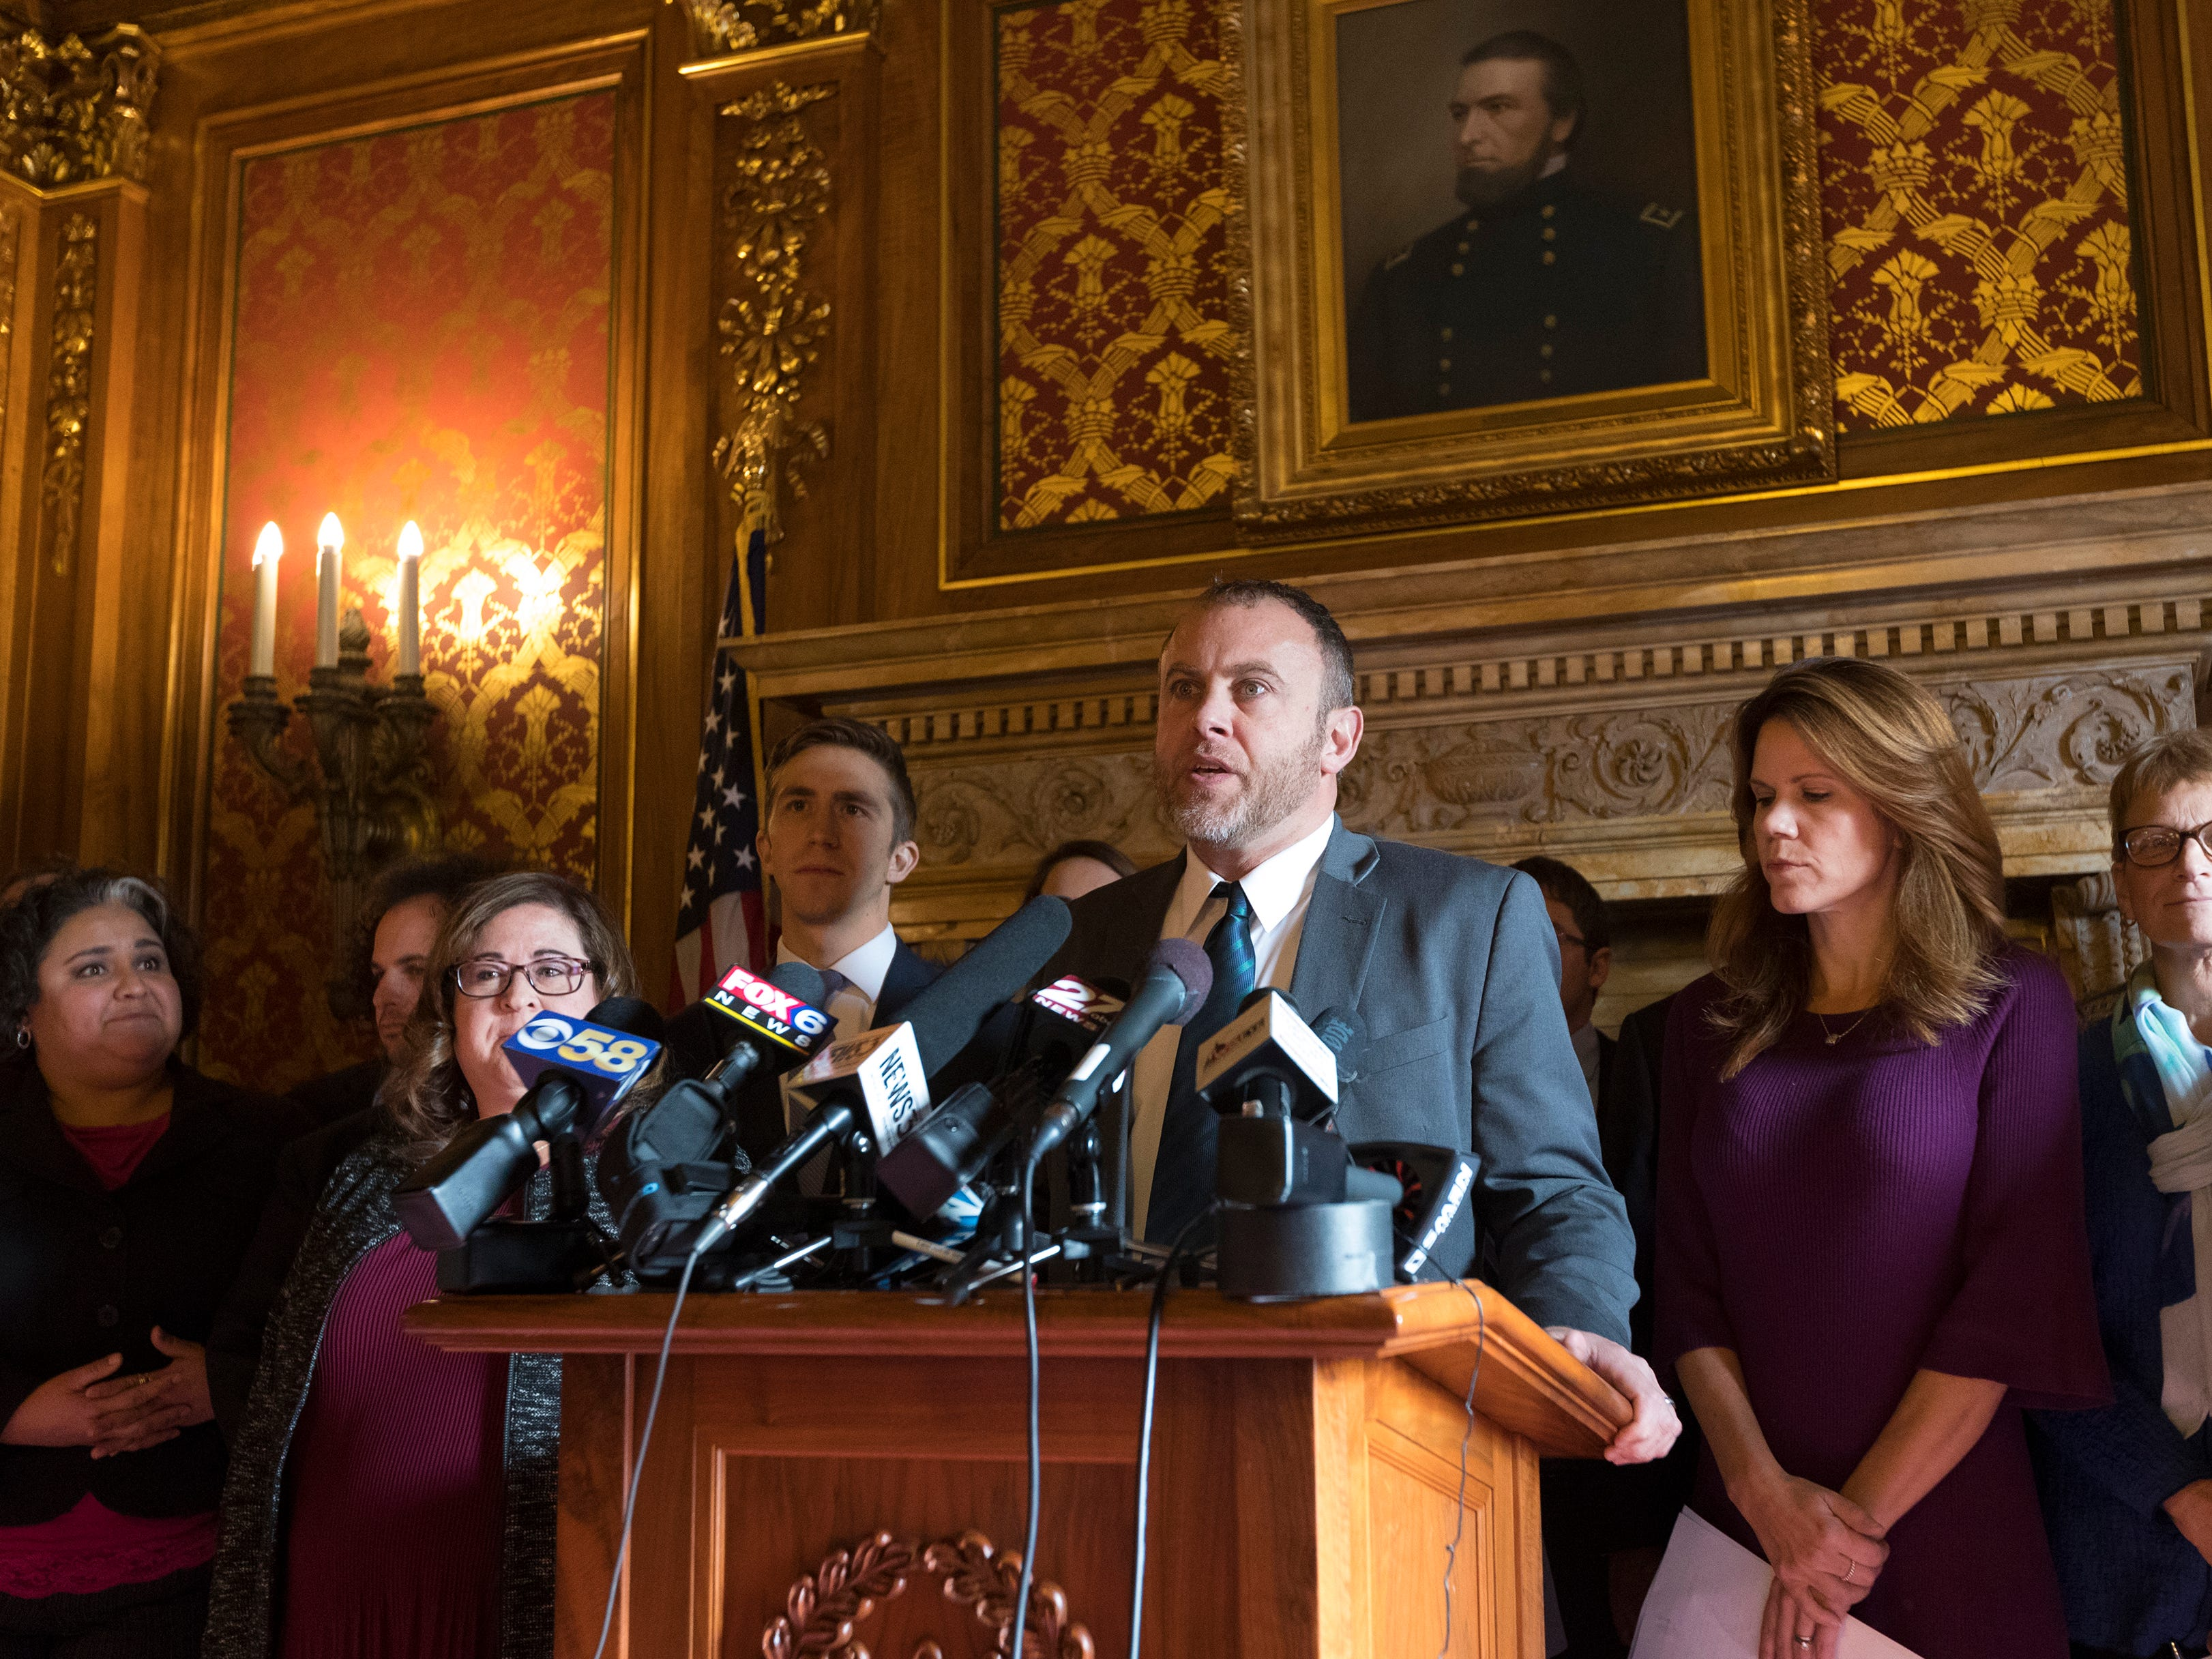 Joined by other Democratic legislators, Assembly Minority Leader Gordon Hintz slams the extraordinary session to curb the powers of incoming governor and attorney general at the Capitol in Madison. The state Senate is taking up measures limiting the powers of Gov.-elect Tony Evers and Attorney General John Kaul when they take office. Opponents promised to pack the state Capitol for it.